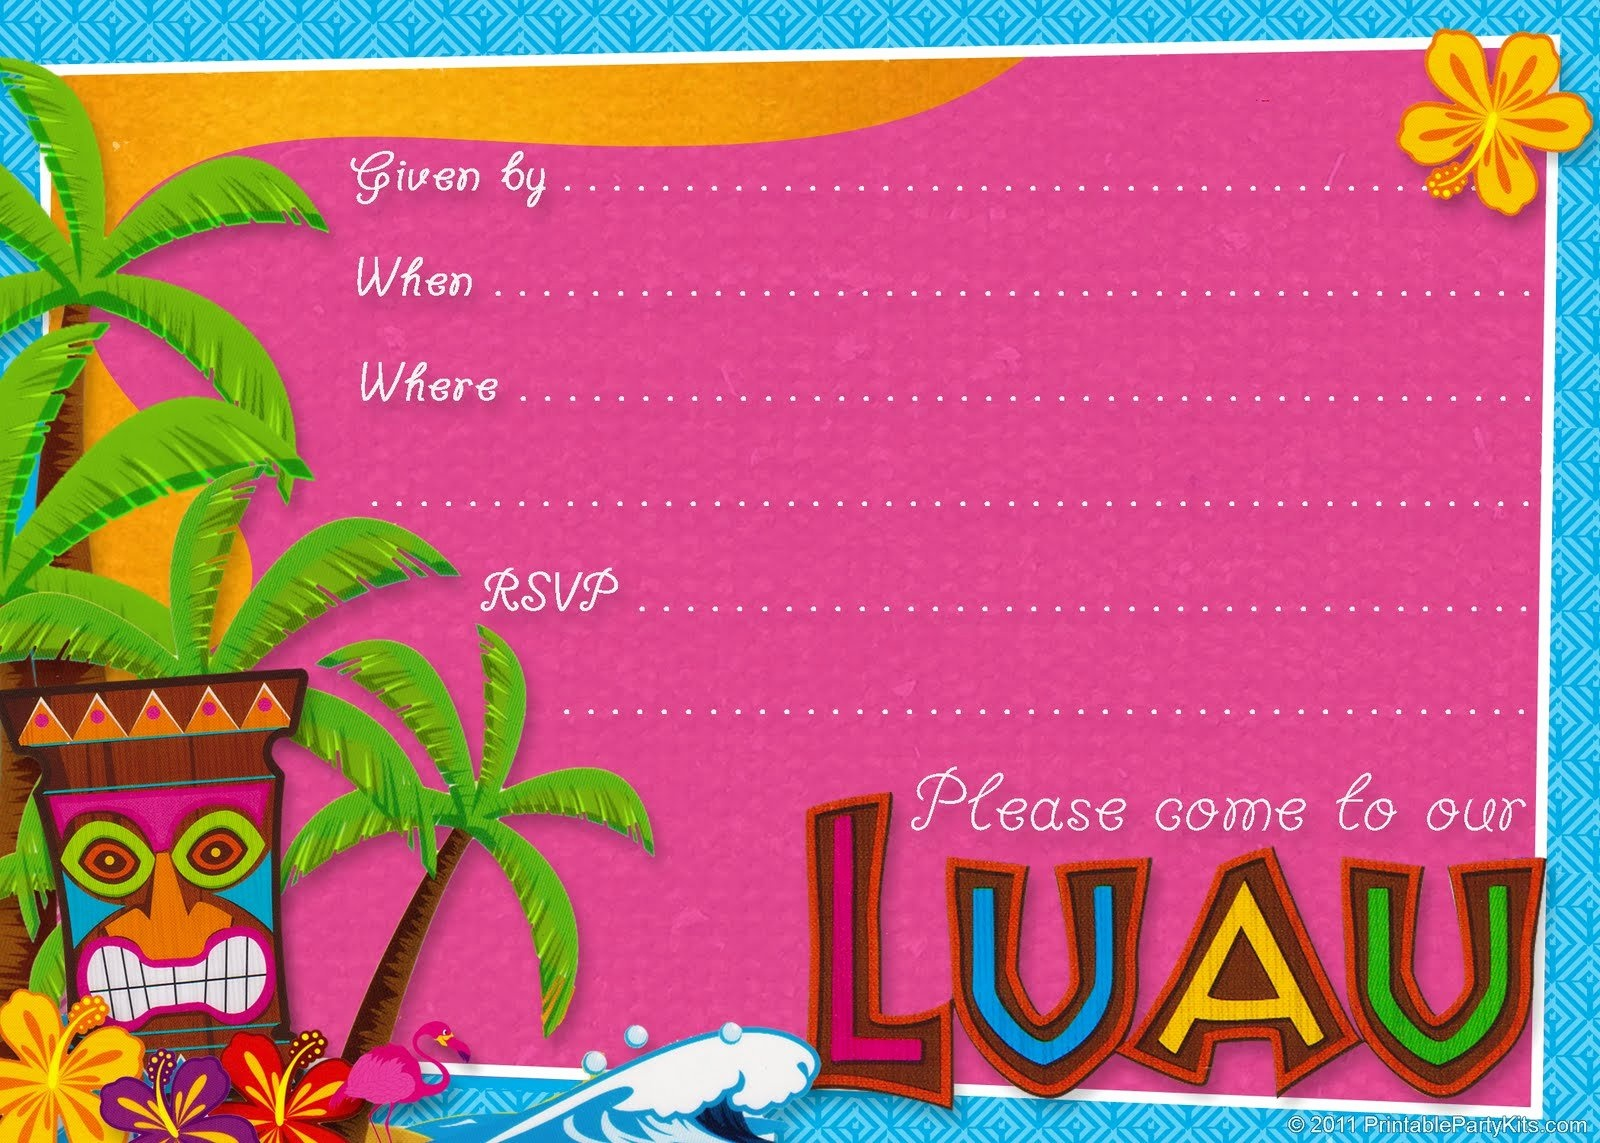 Luau Party Invitation Template Best Of Hawaiian Luau Party - Hawaiian Party Invitations Free Printable